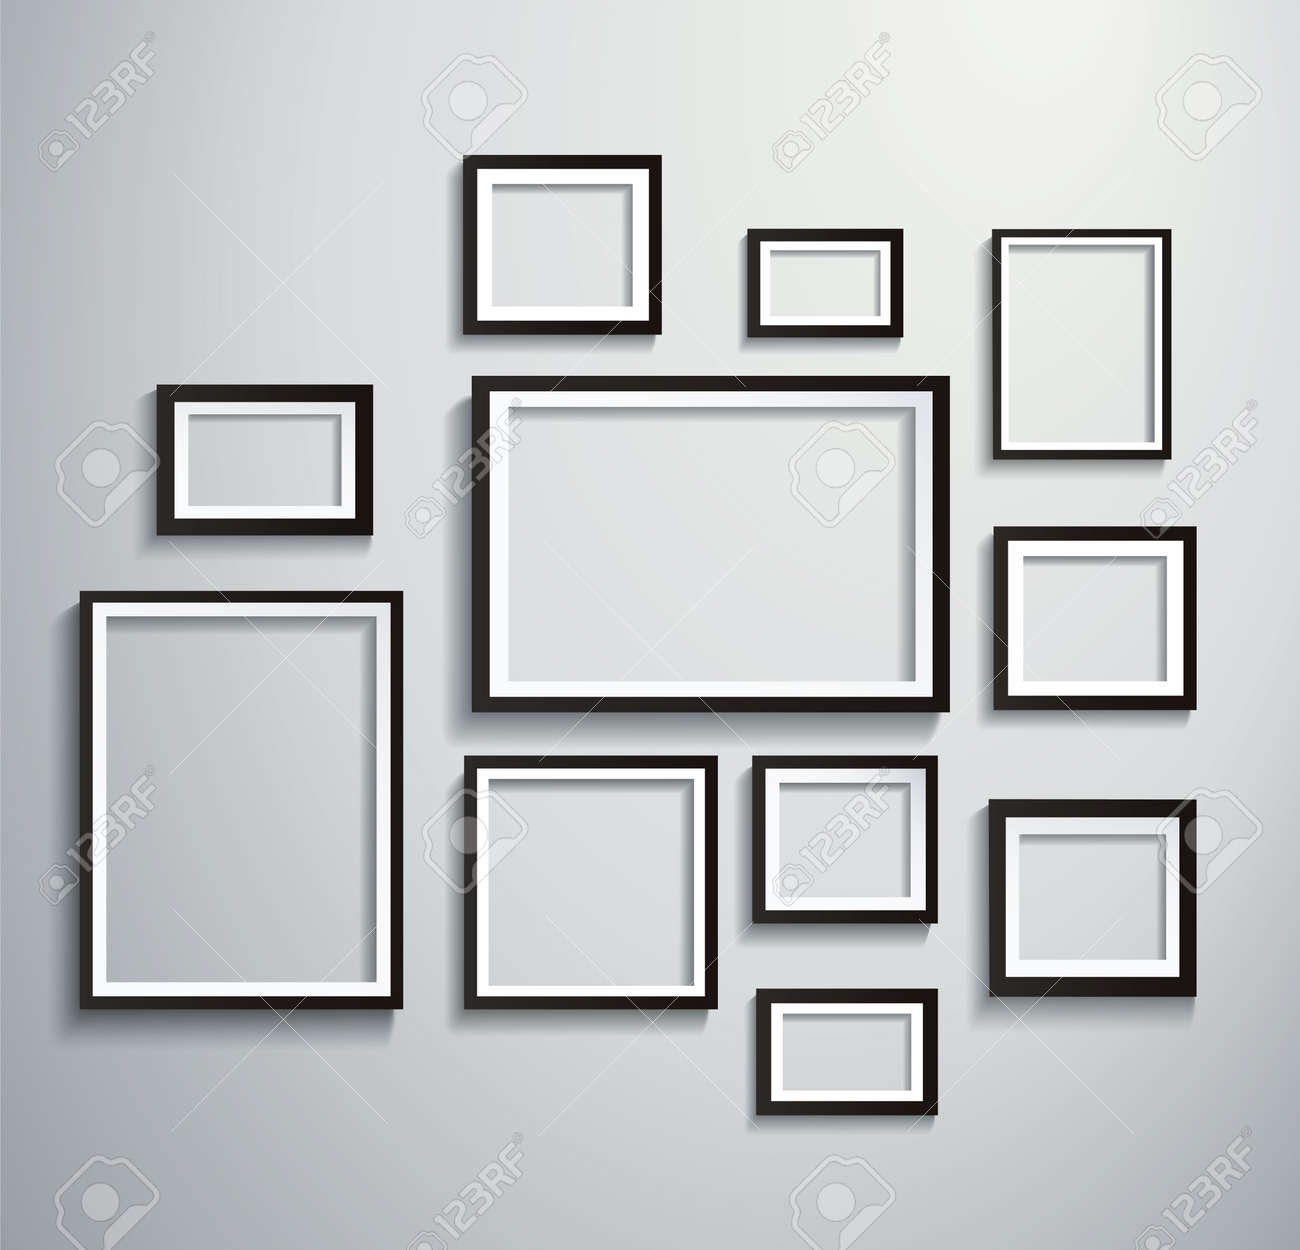 Square isolated picture frame on wall - 133558804